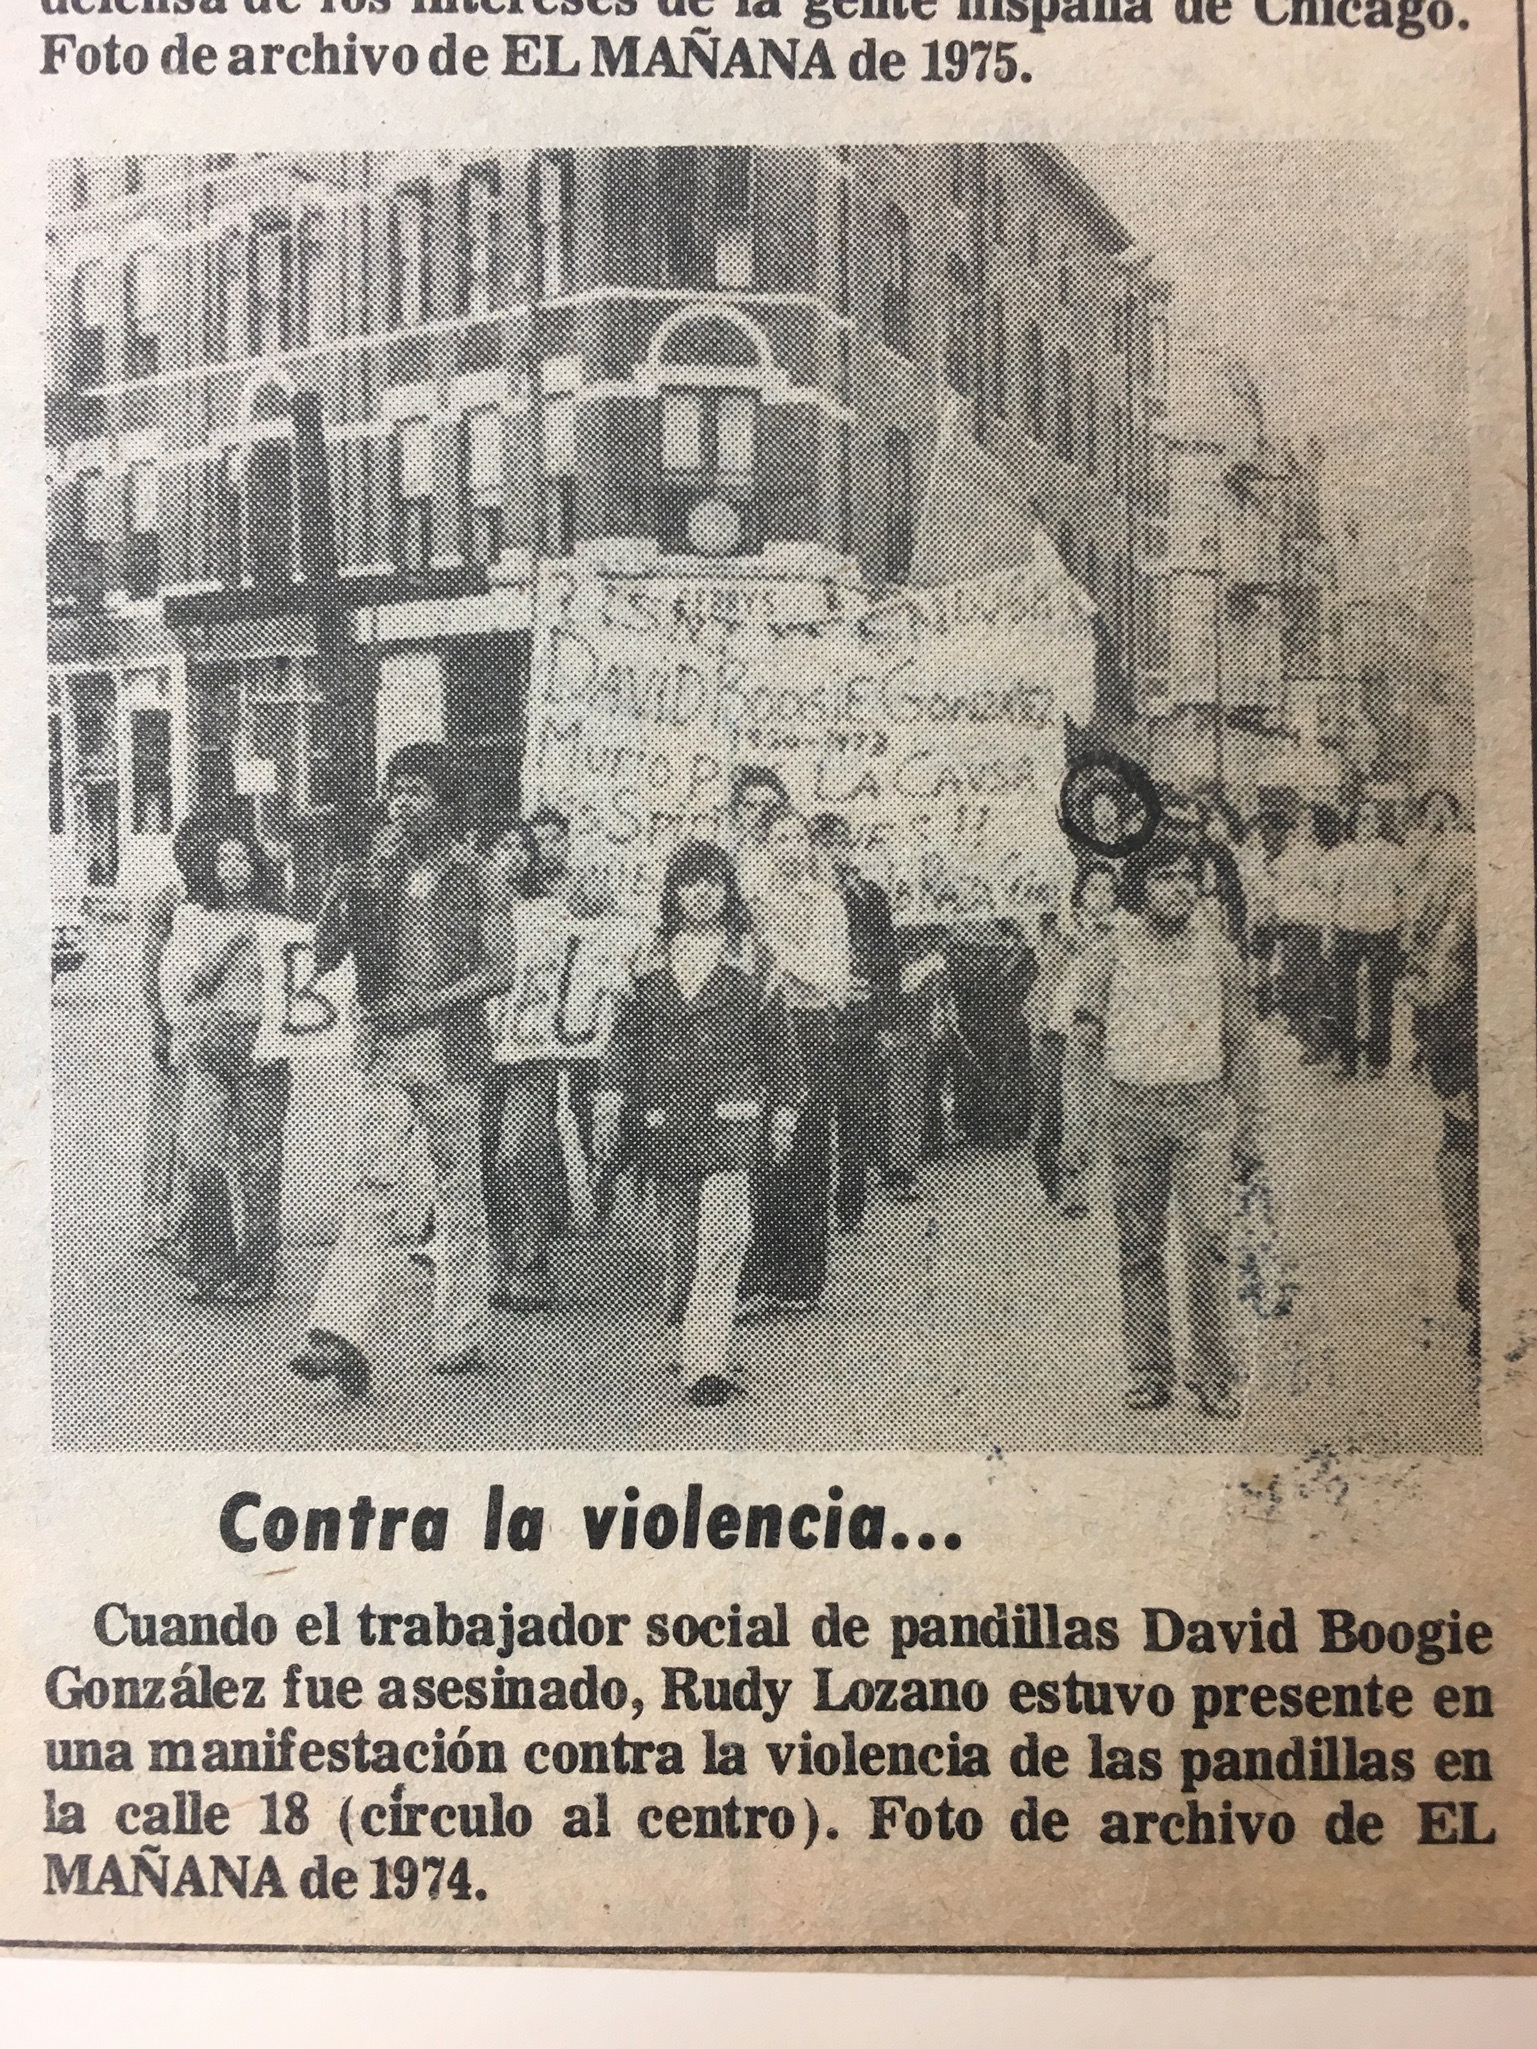 From El Mañana, 1983, reprinted from 1974 for an article about the late justice leader Rudy Lozano, who appears circled in the photo. Also in the photo, Rufus and Cookie. I found this image in the Rudy Lozano papers at the Daley Library, UIC Special Collections in 2018.